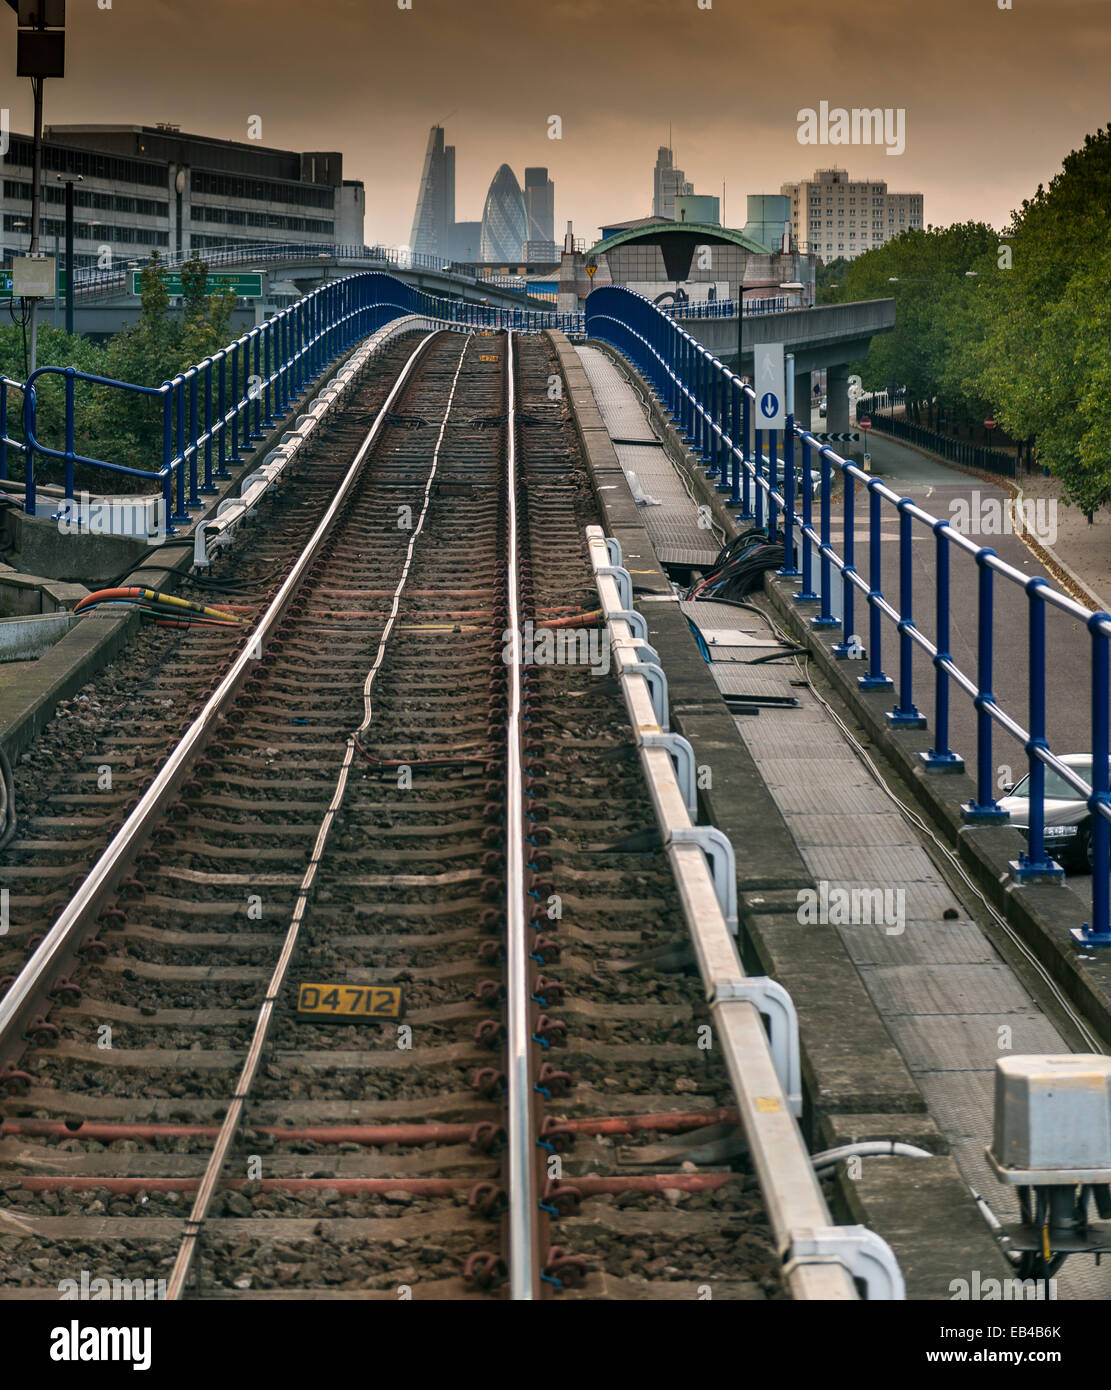 Docklands Light Railway connecting Canary Wharf and the City of London with City skyscrapers in the background - Stock Image